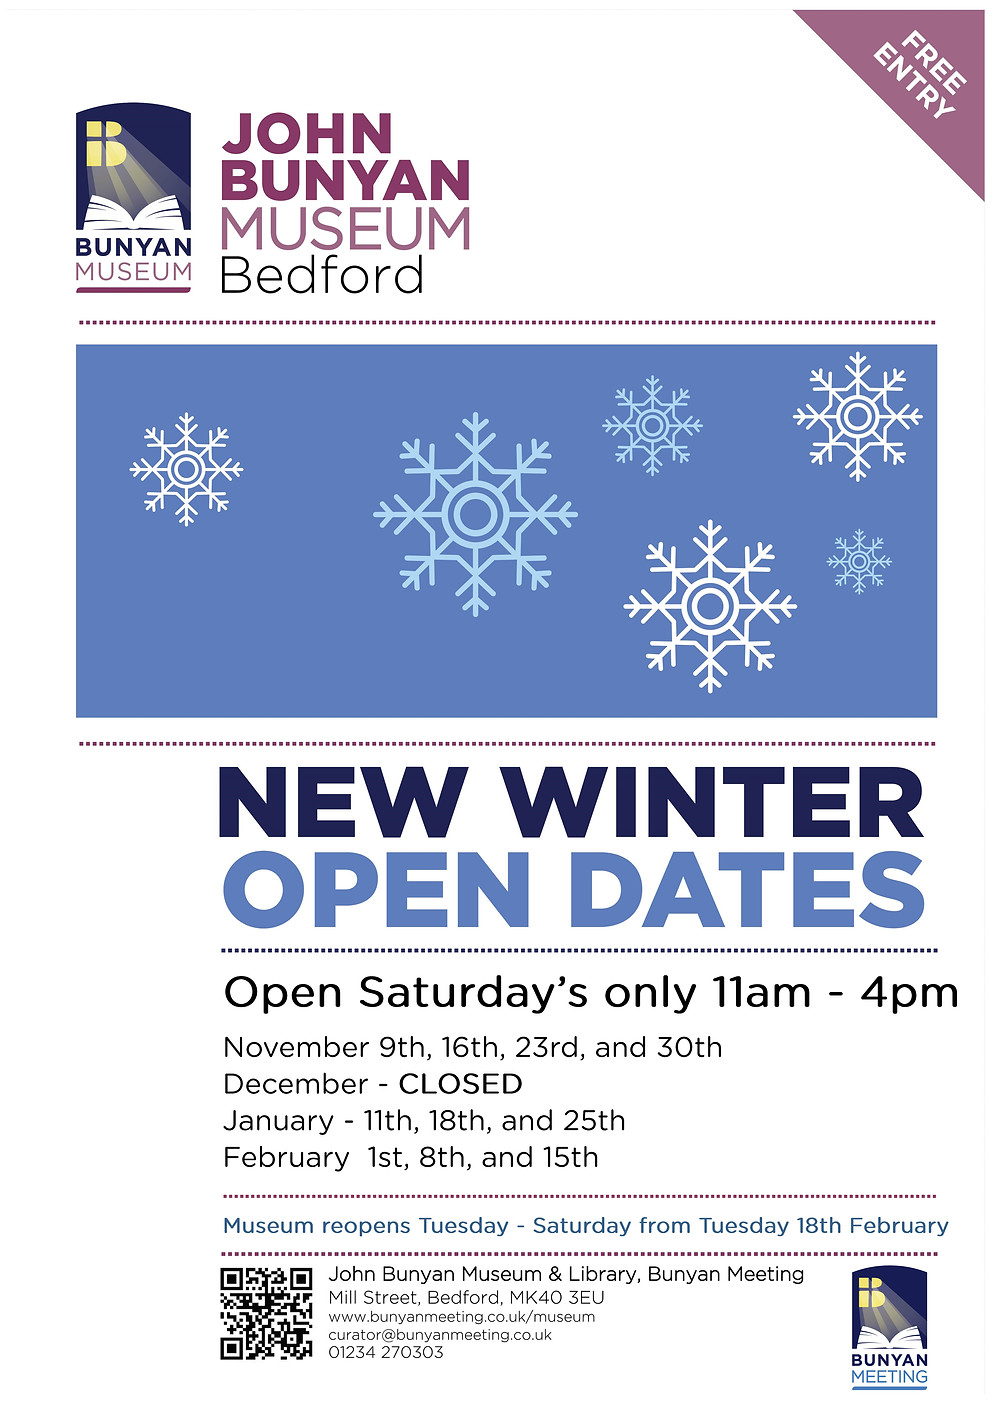 New winter opening dates for November 2019, and January and February 2020